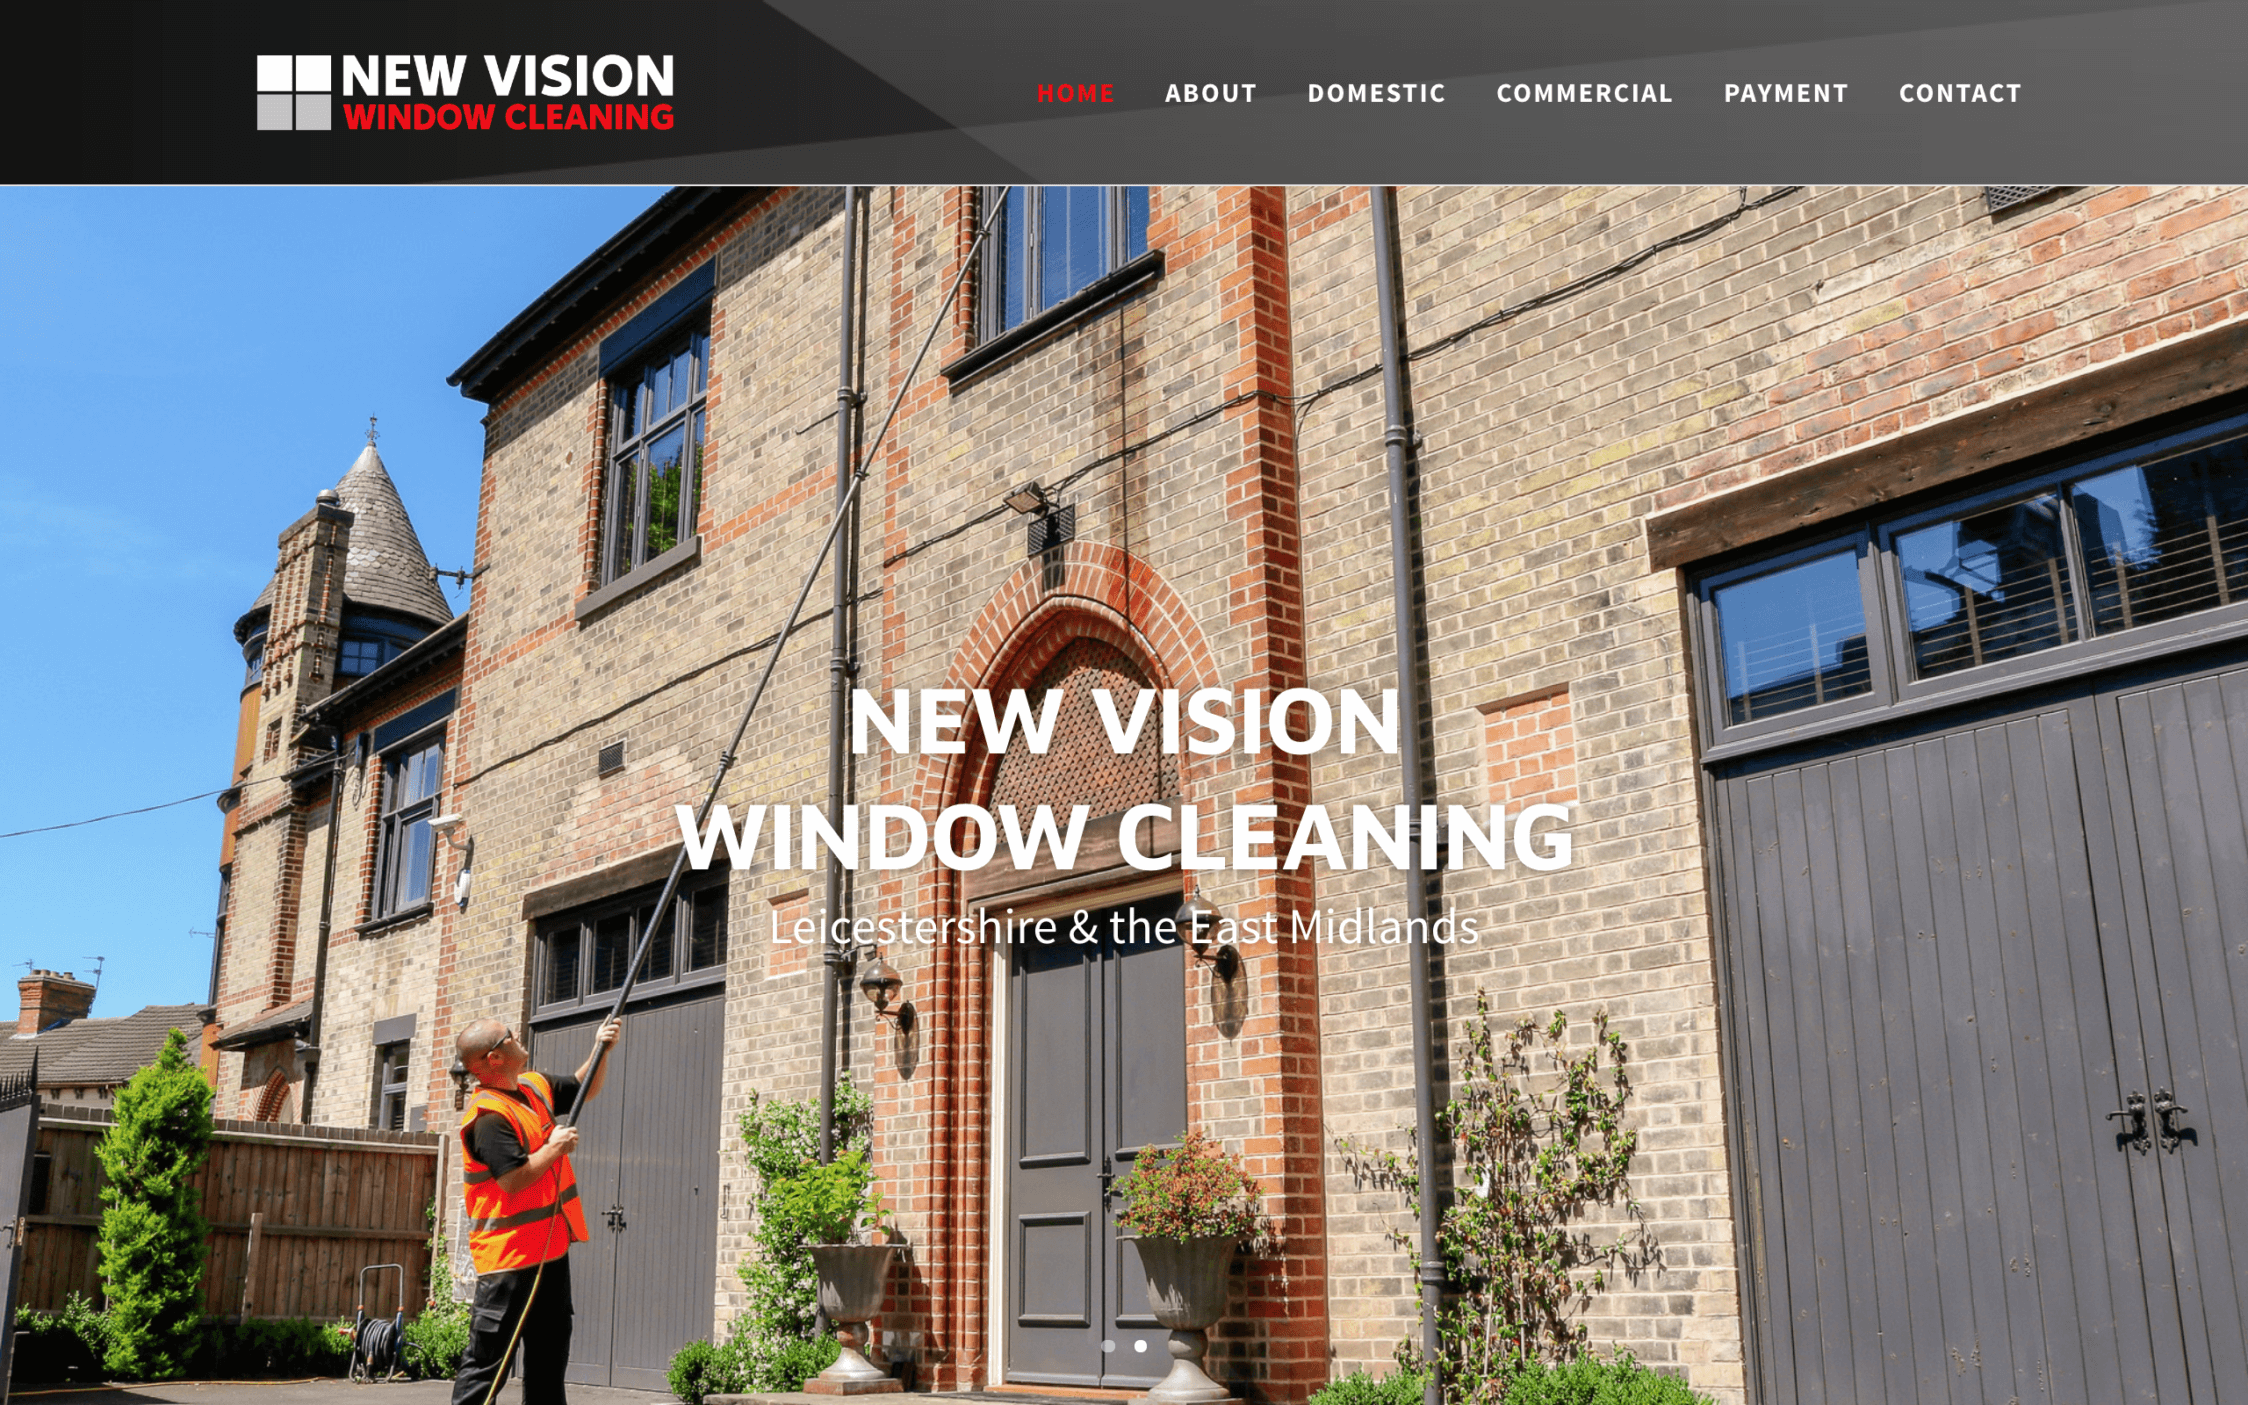 New Vision Window Cleaning Screenshotat 11.45.32 2 - Website design for window cleaning business